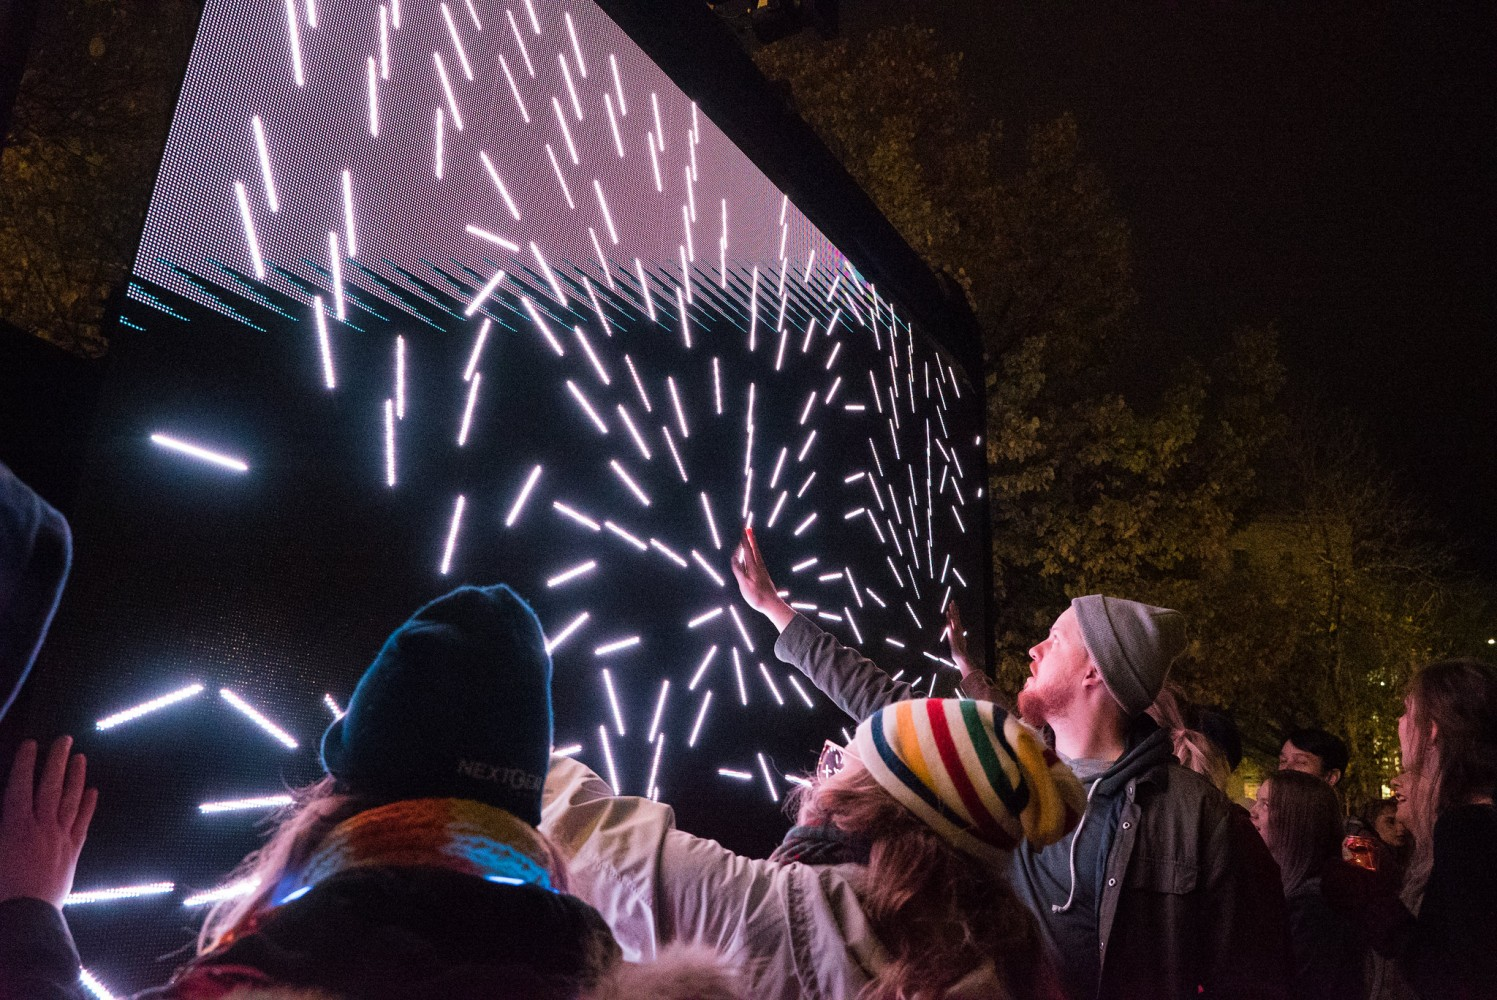 Nuit Blanche may be coming to Brampton in 2020